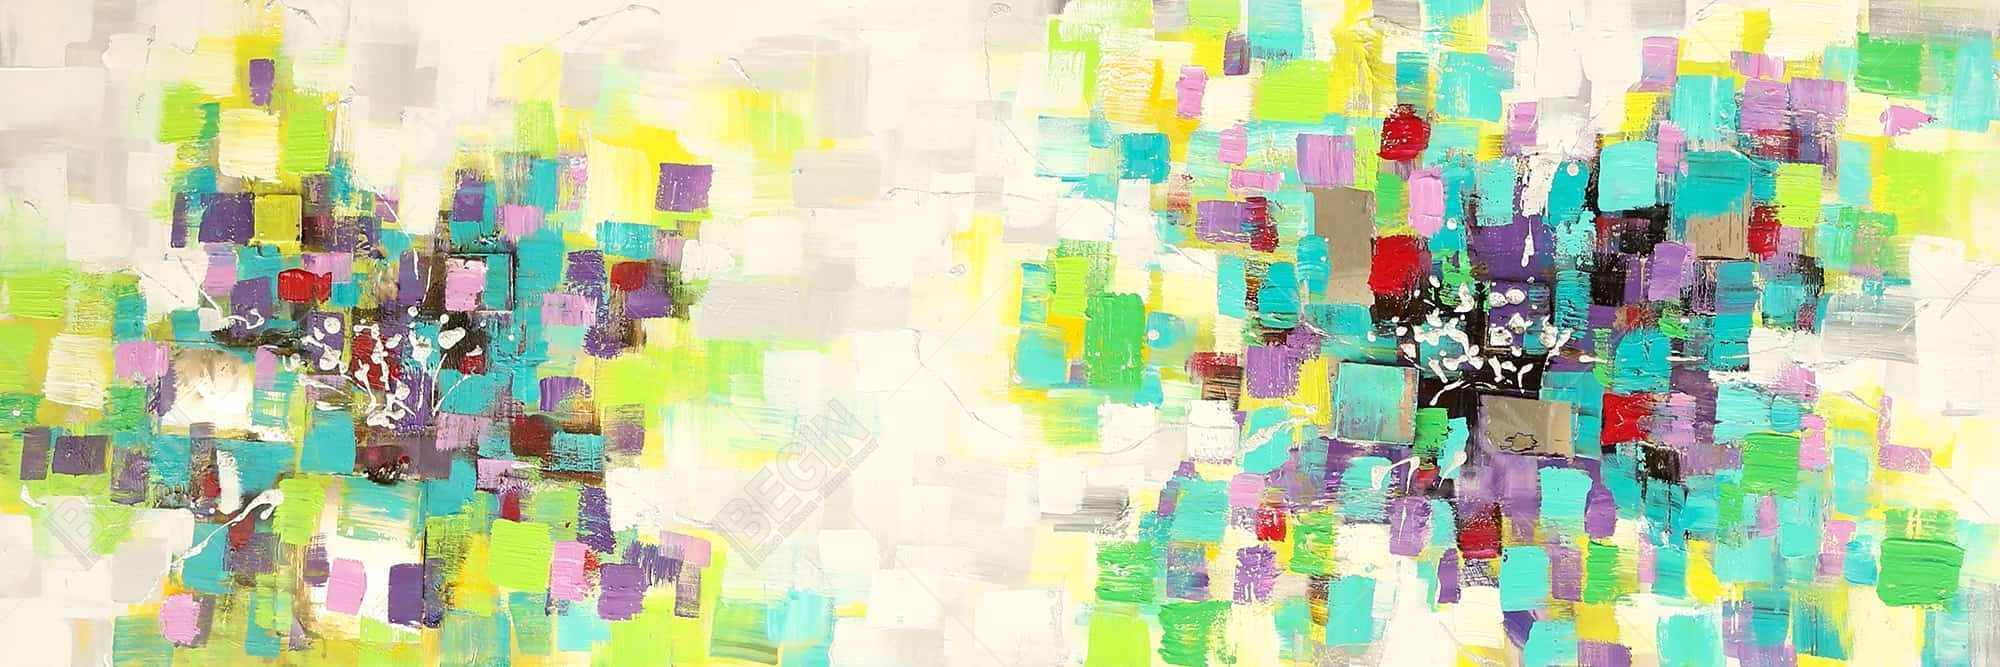 Abstract squares flowers